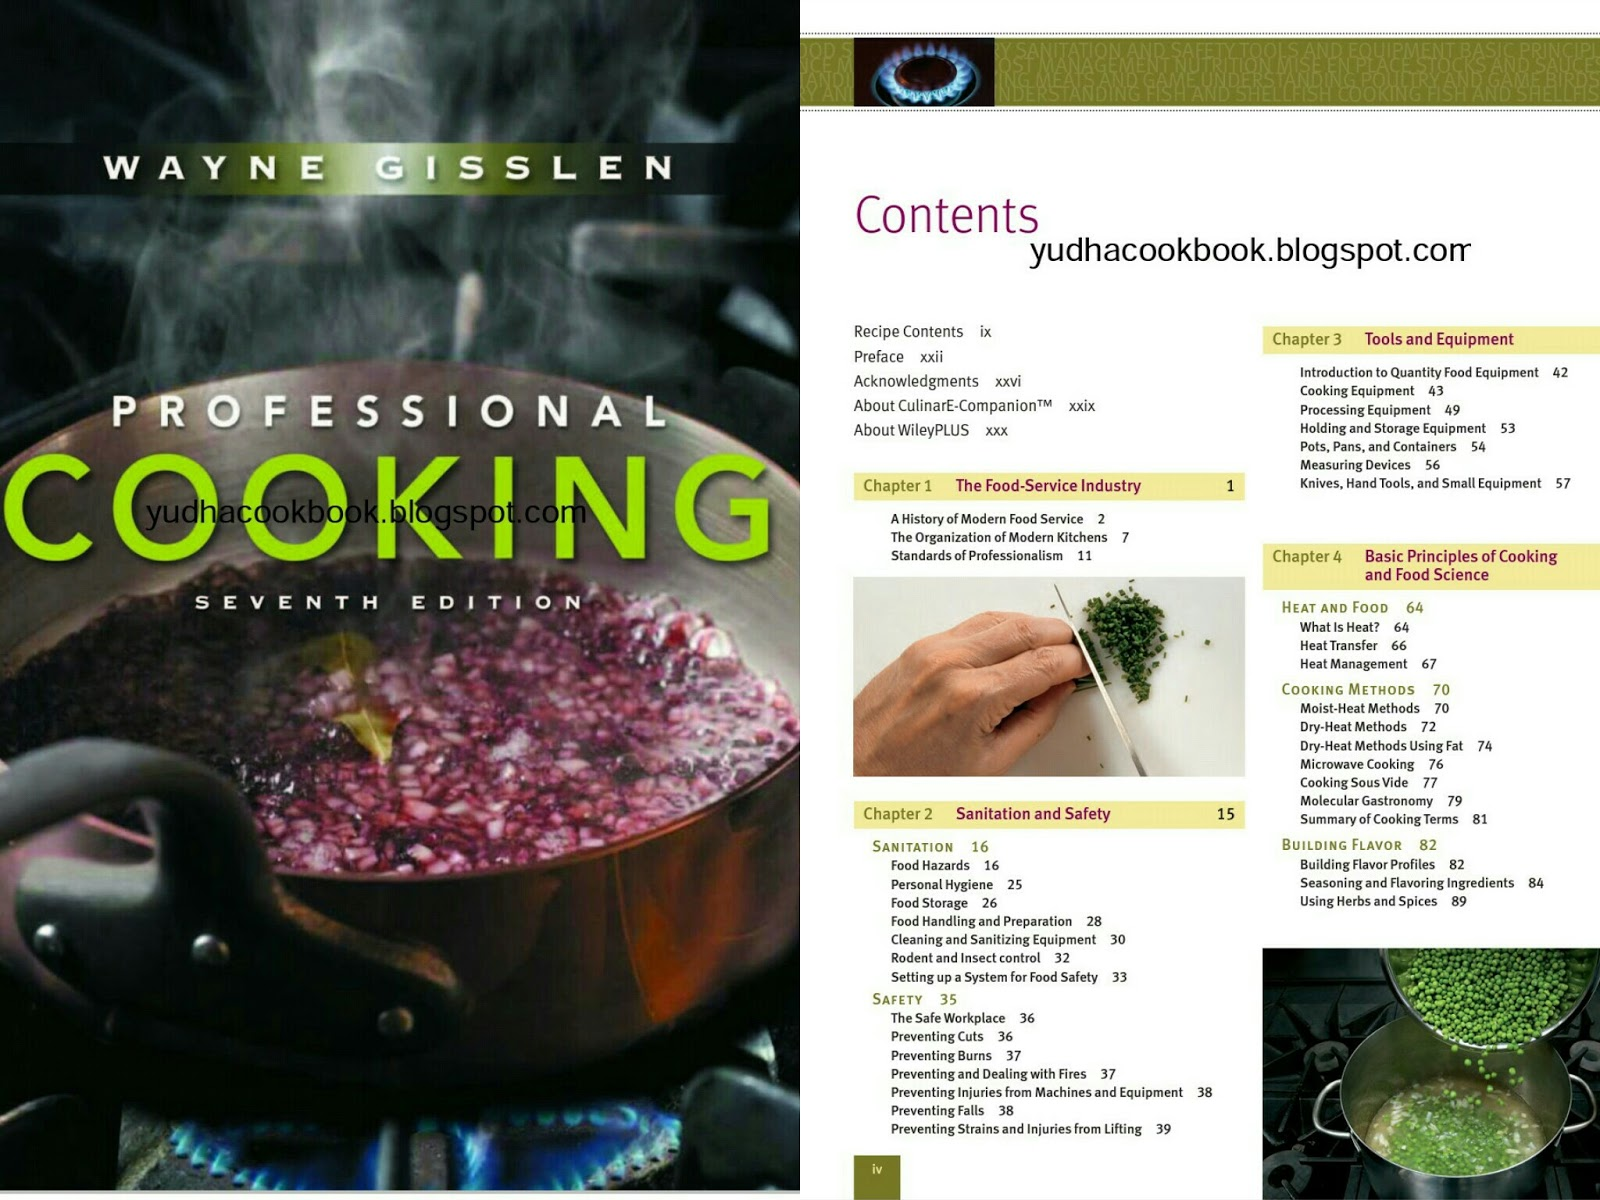 Professional cooking 7th edition yudhacookbook professional cooking 7th edition forumfinder Image collections